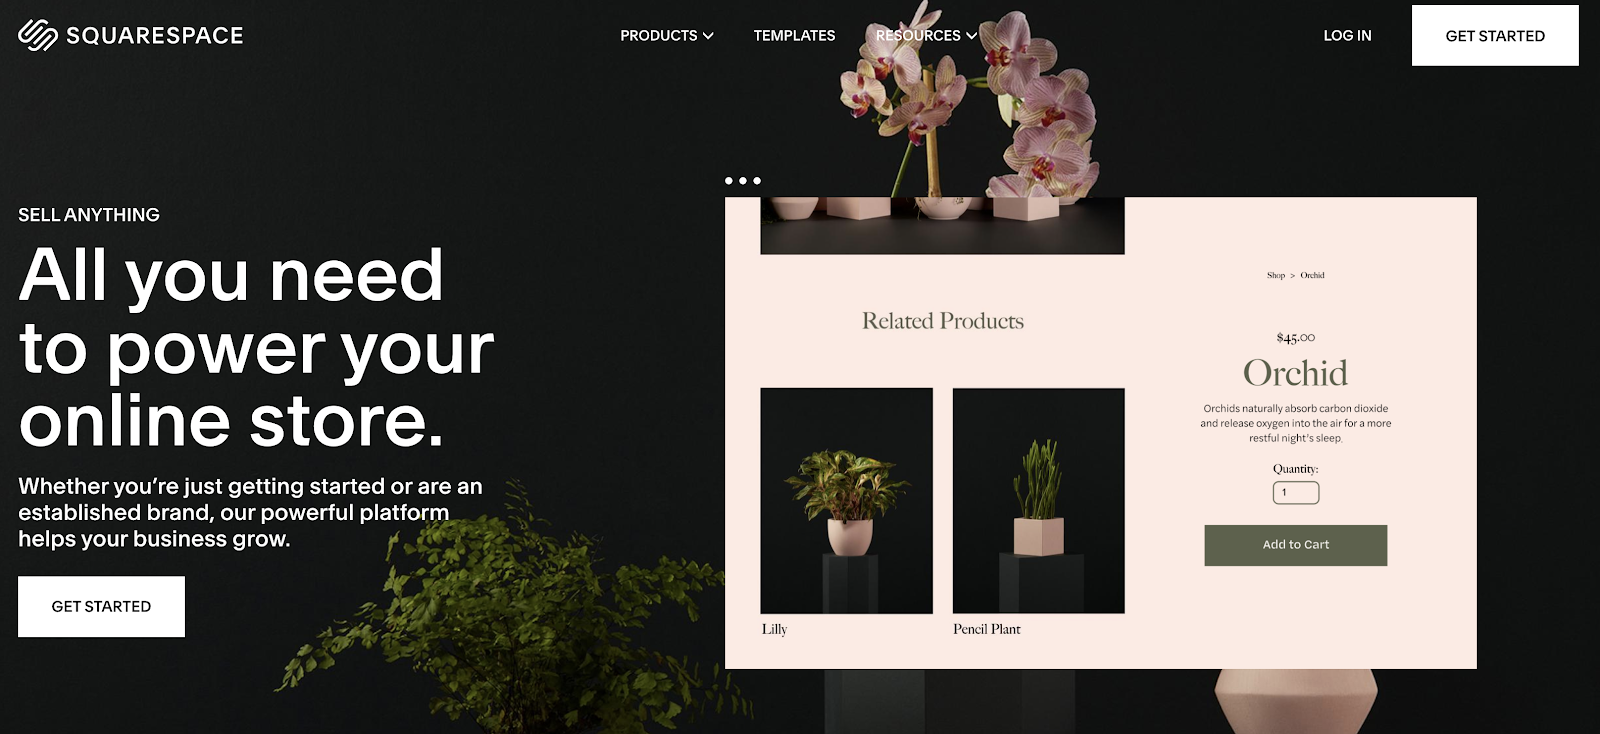 Squarespace eCommerce Website Builder (Landing Page Screenshot)